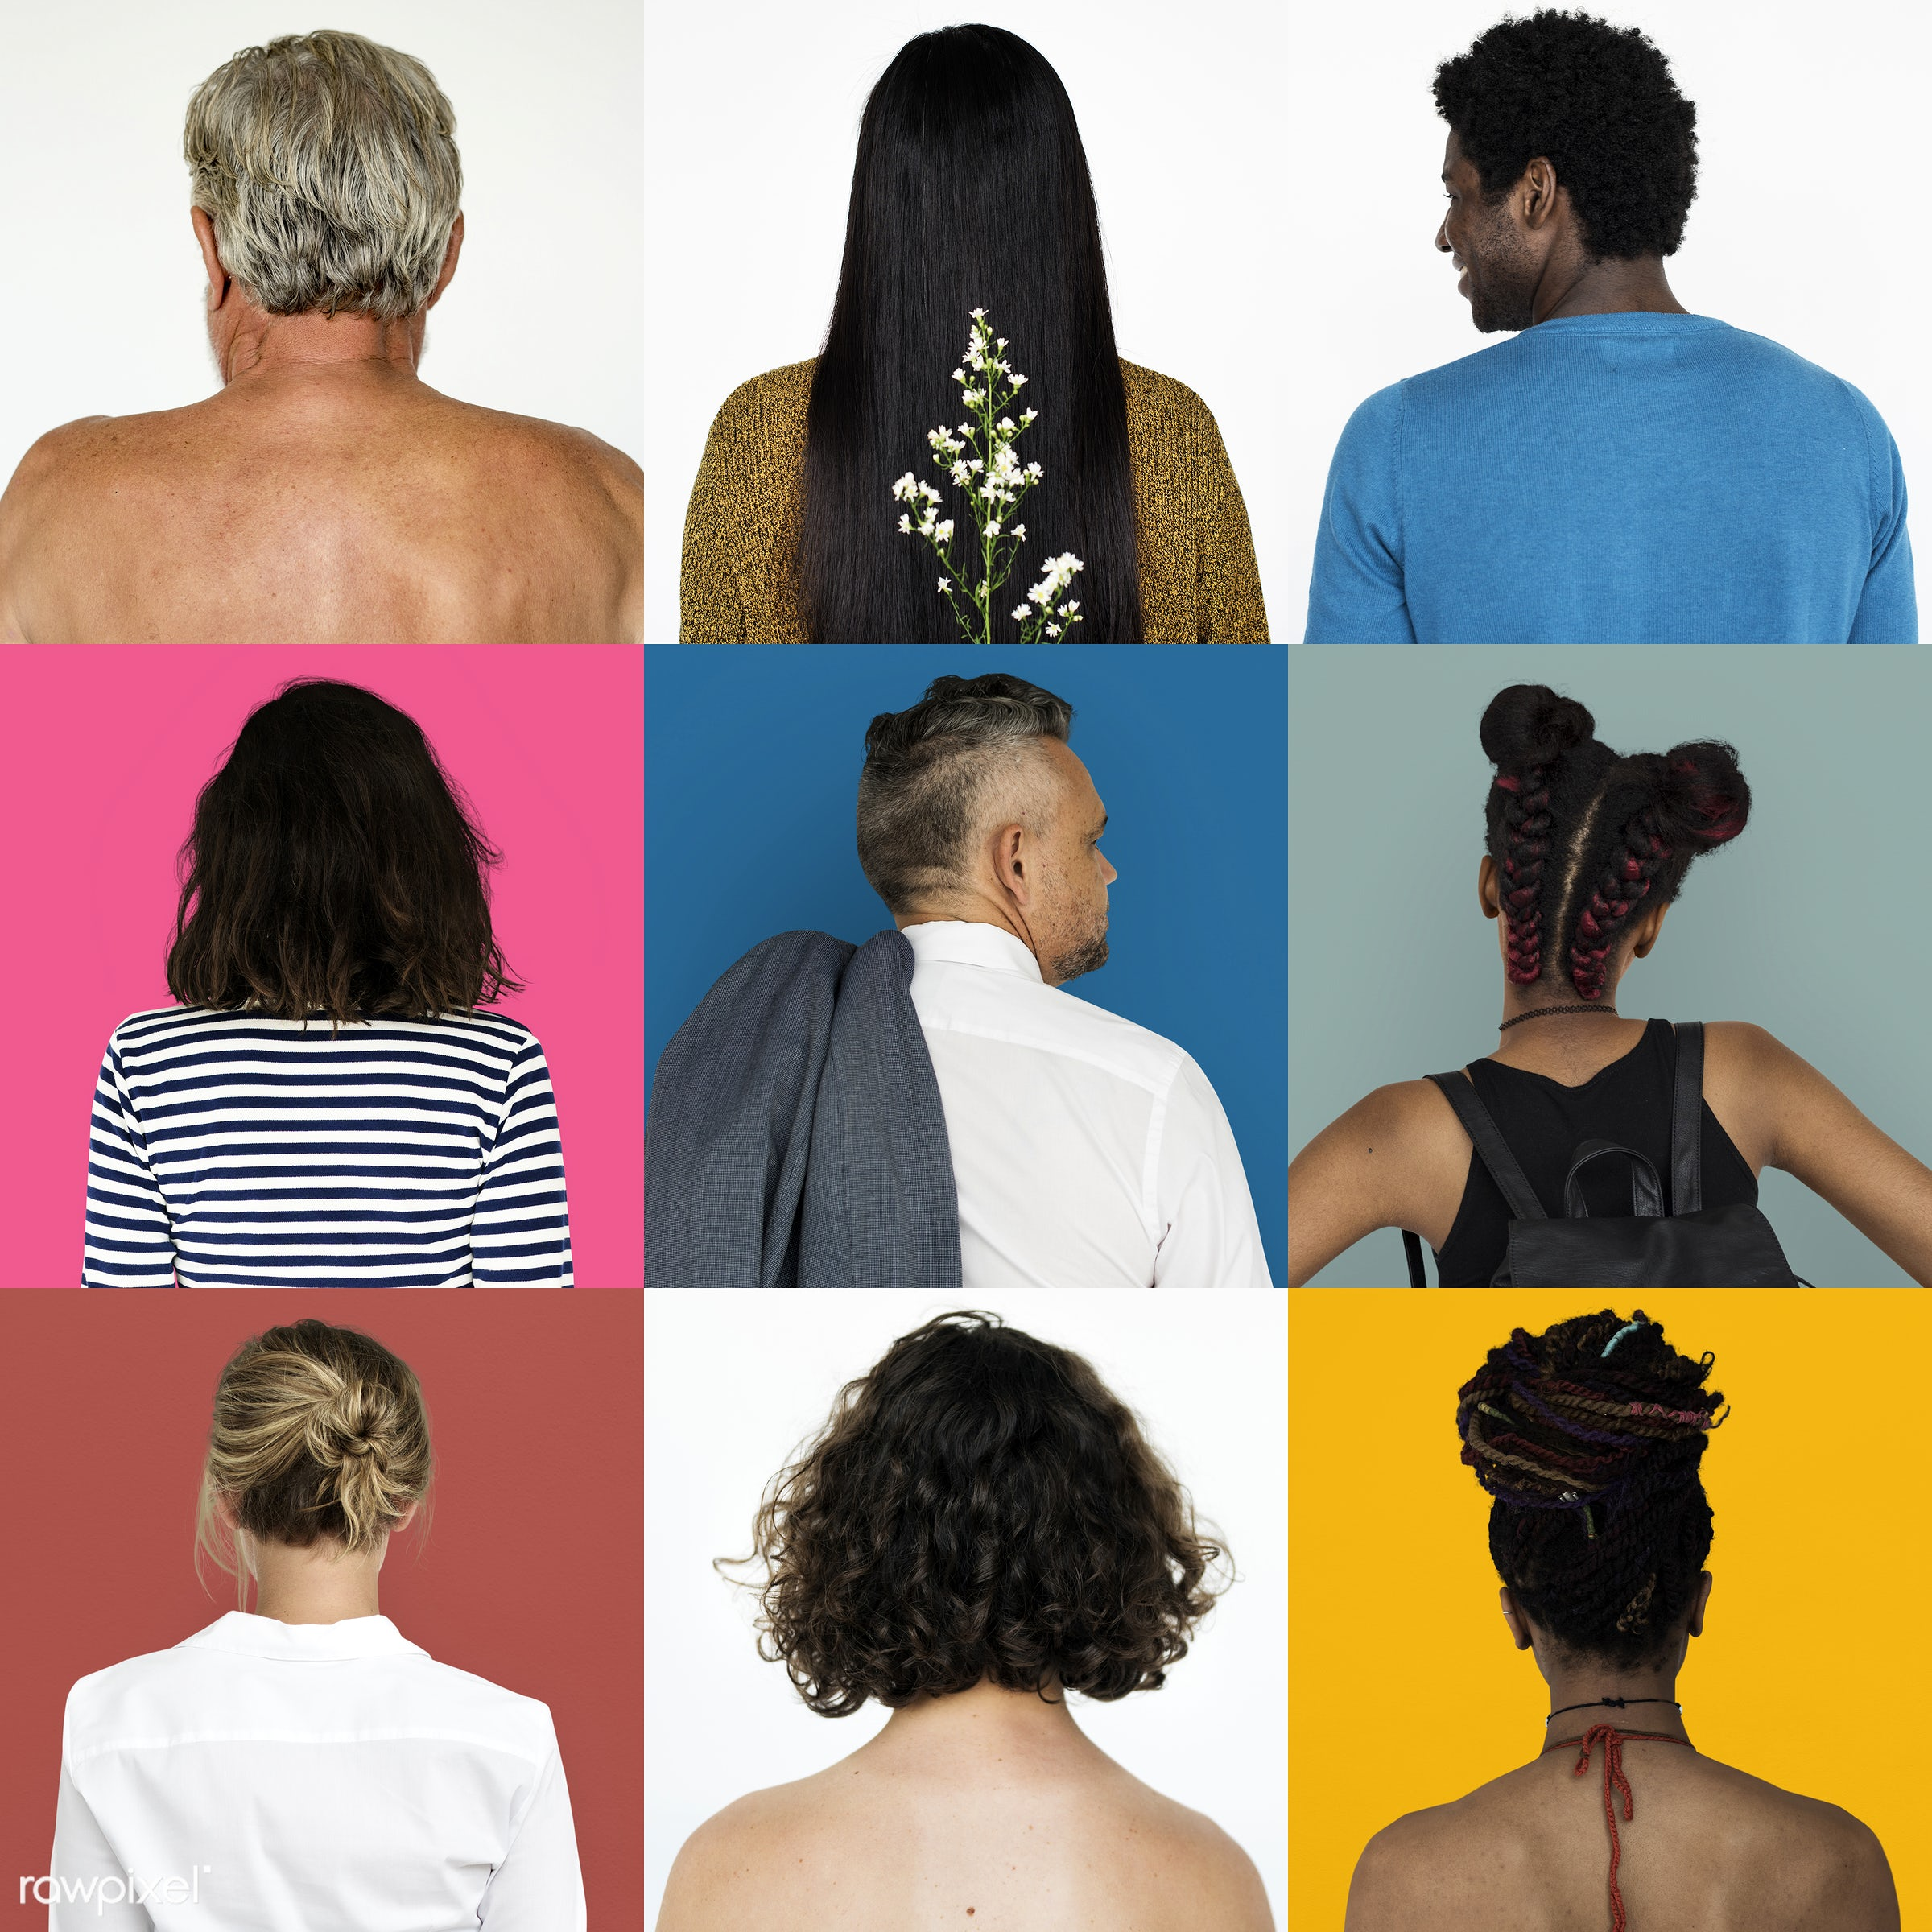 different, studio, diverse, variation, collages, people, race, style, casual, gender, isolated, diversity, ethnic, society,...